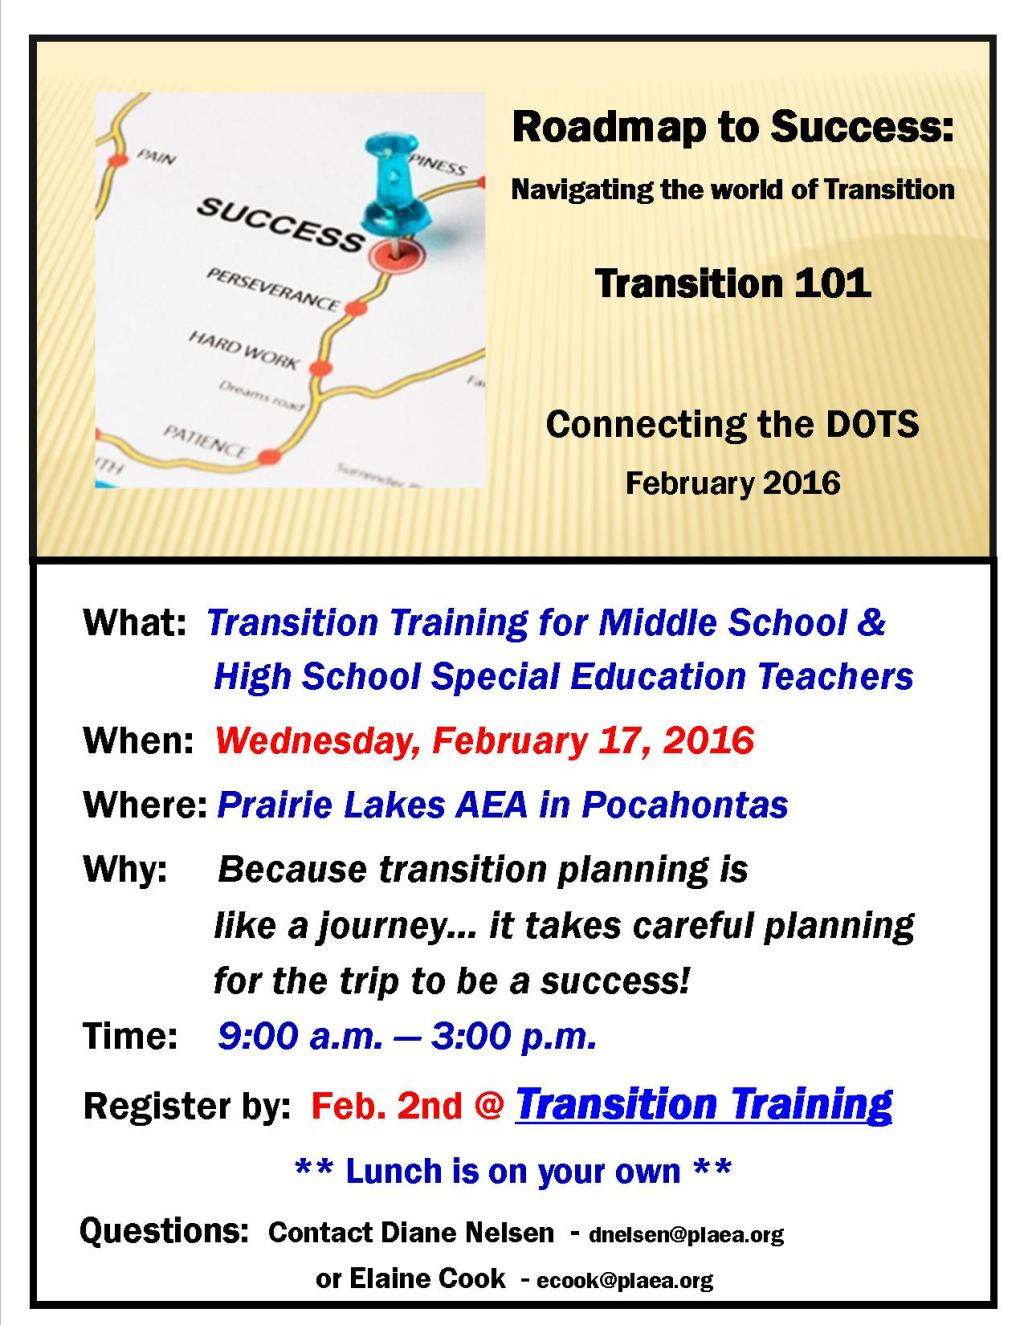 Transition Teacher Training flyer - Feb. 2016